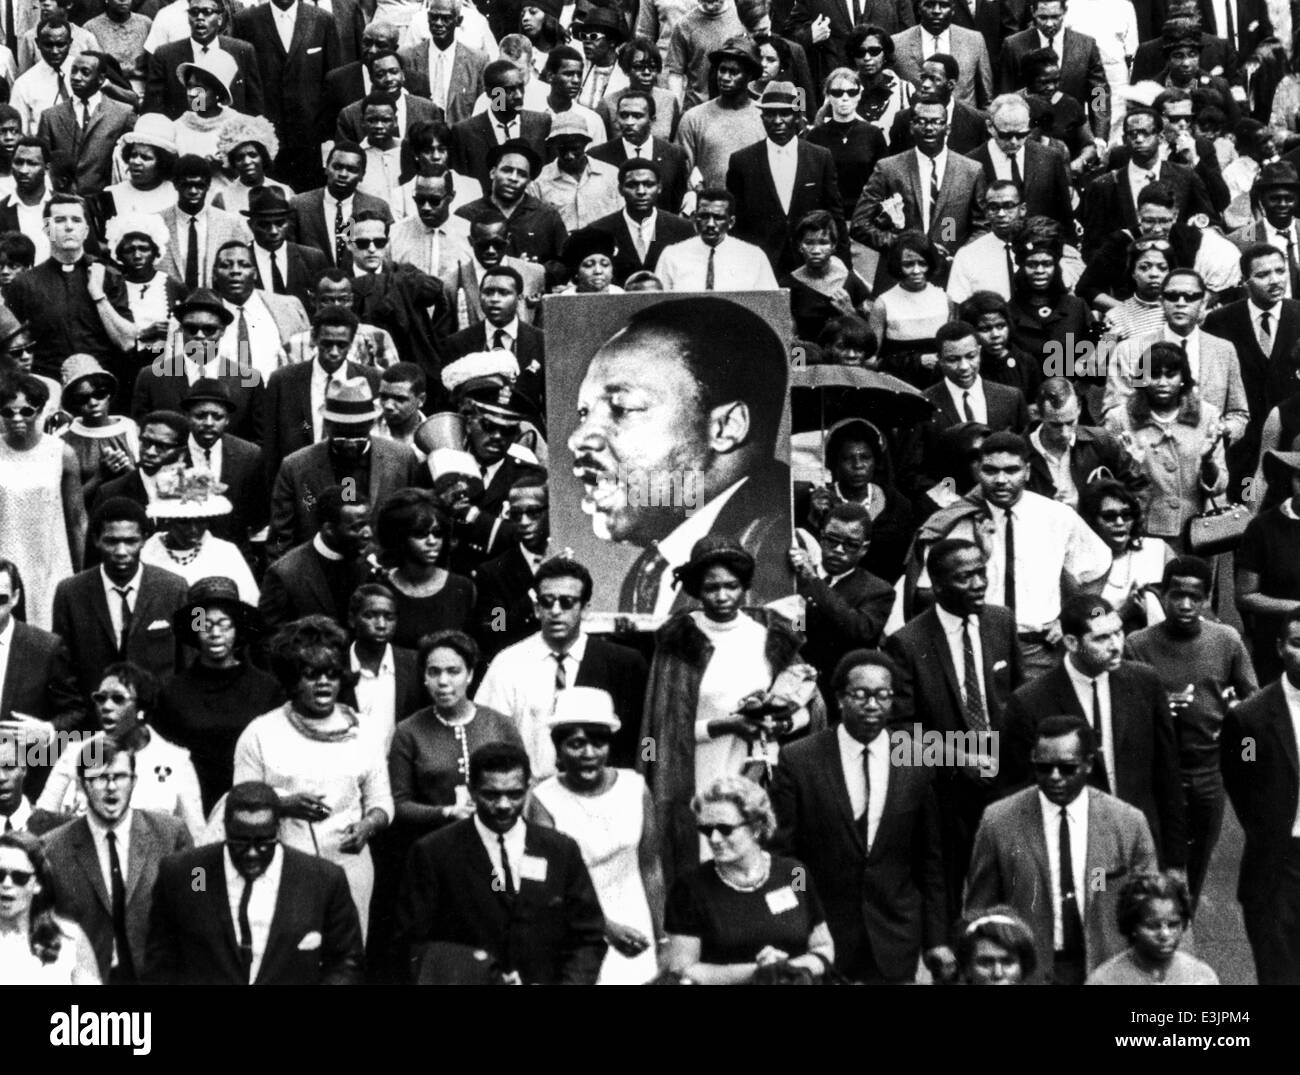 martin luther king's funeral,Atlanta, Georgia April 9, 1968 - Stock Image